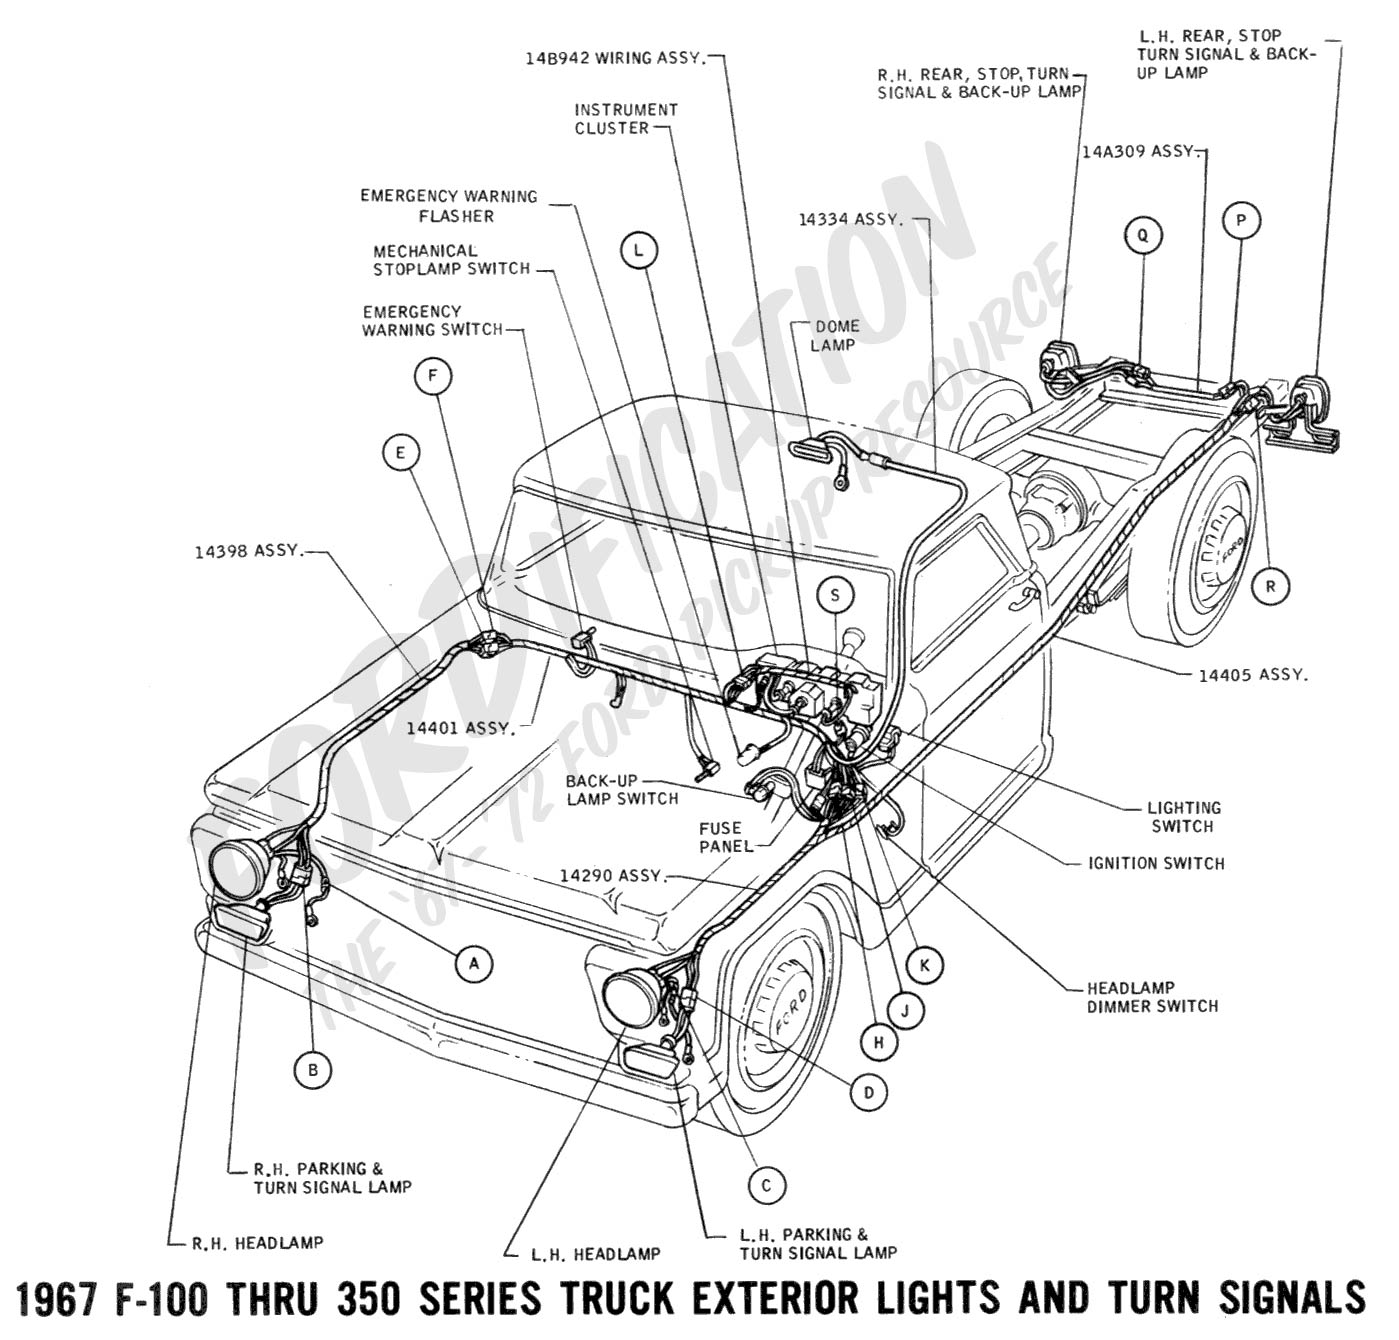 1993 Ford Tempo Brake Line Diagram Electrical Wiring House 1994 Fuse Box Truck Technical Drawings And Schematics Section H Rh Fordification Com 93